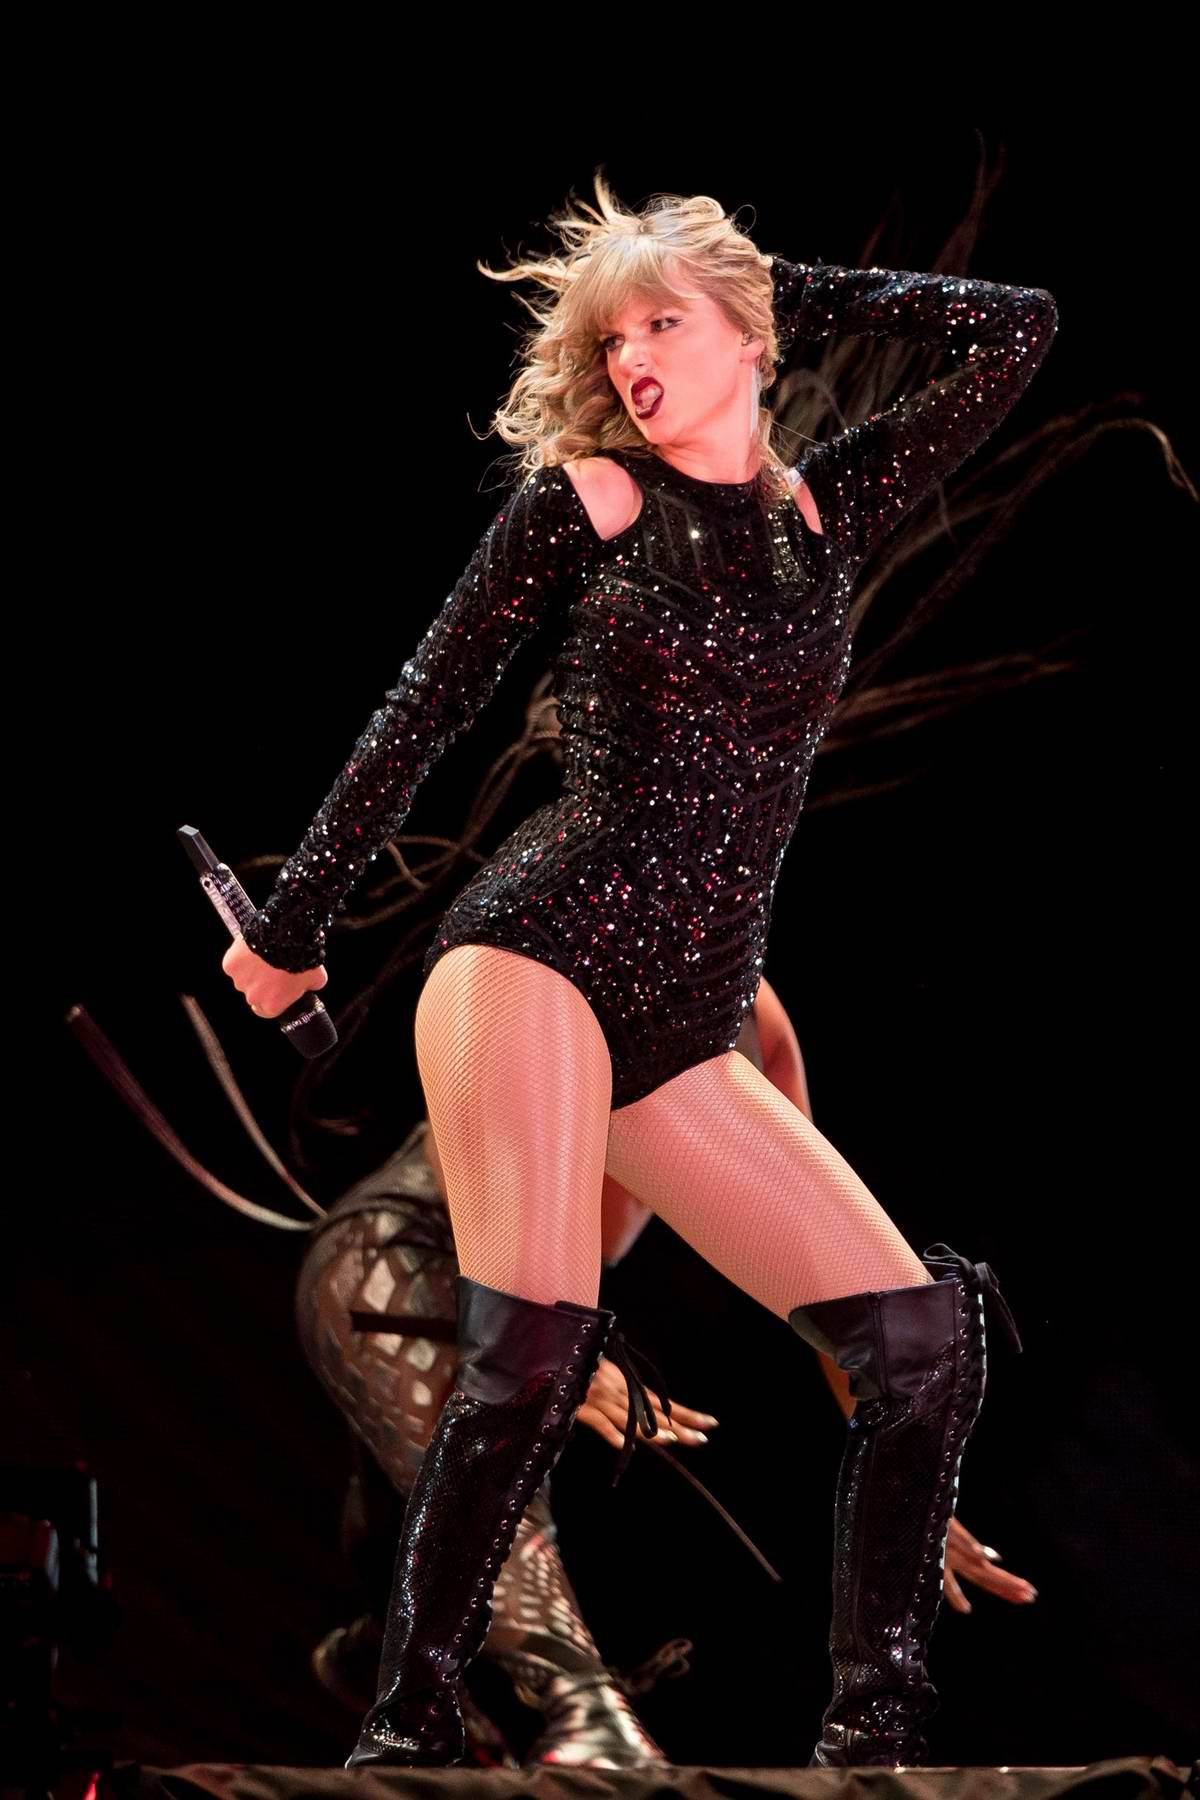 Taylor Swift performs onstage during her Reputation Stadium Tour in Nashville, Tennessee